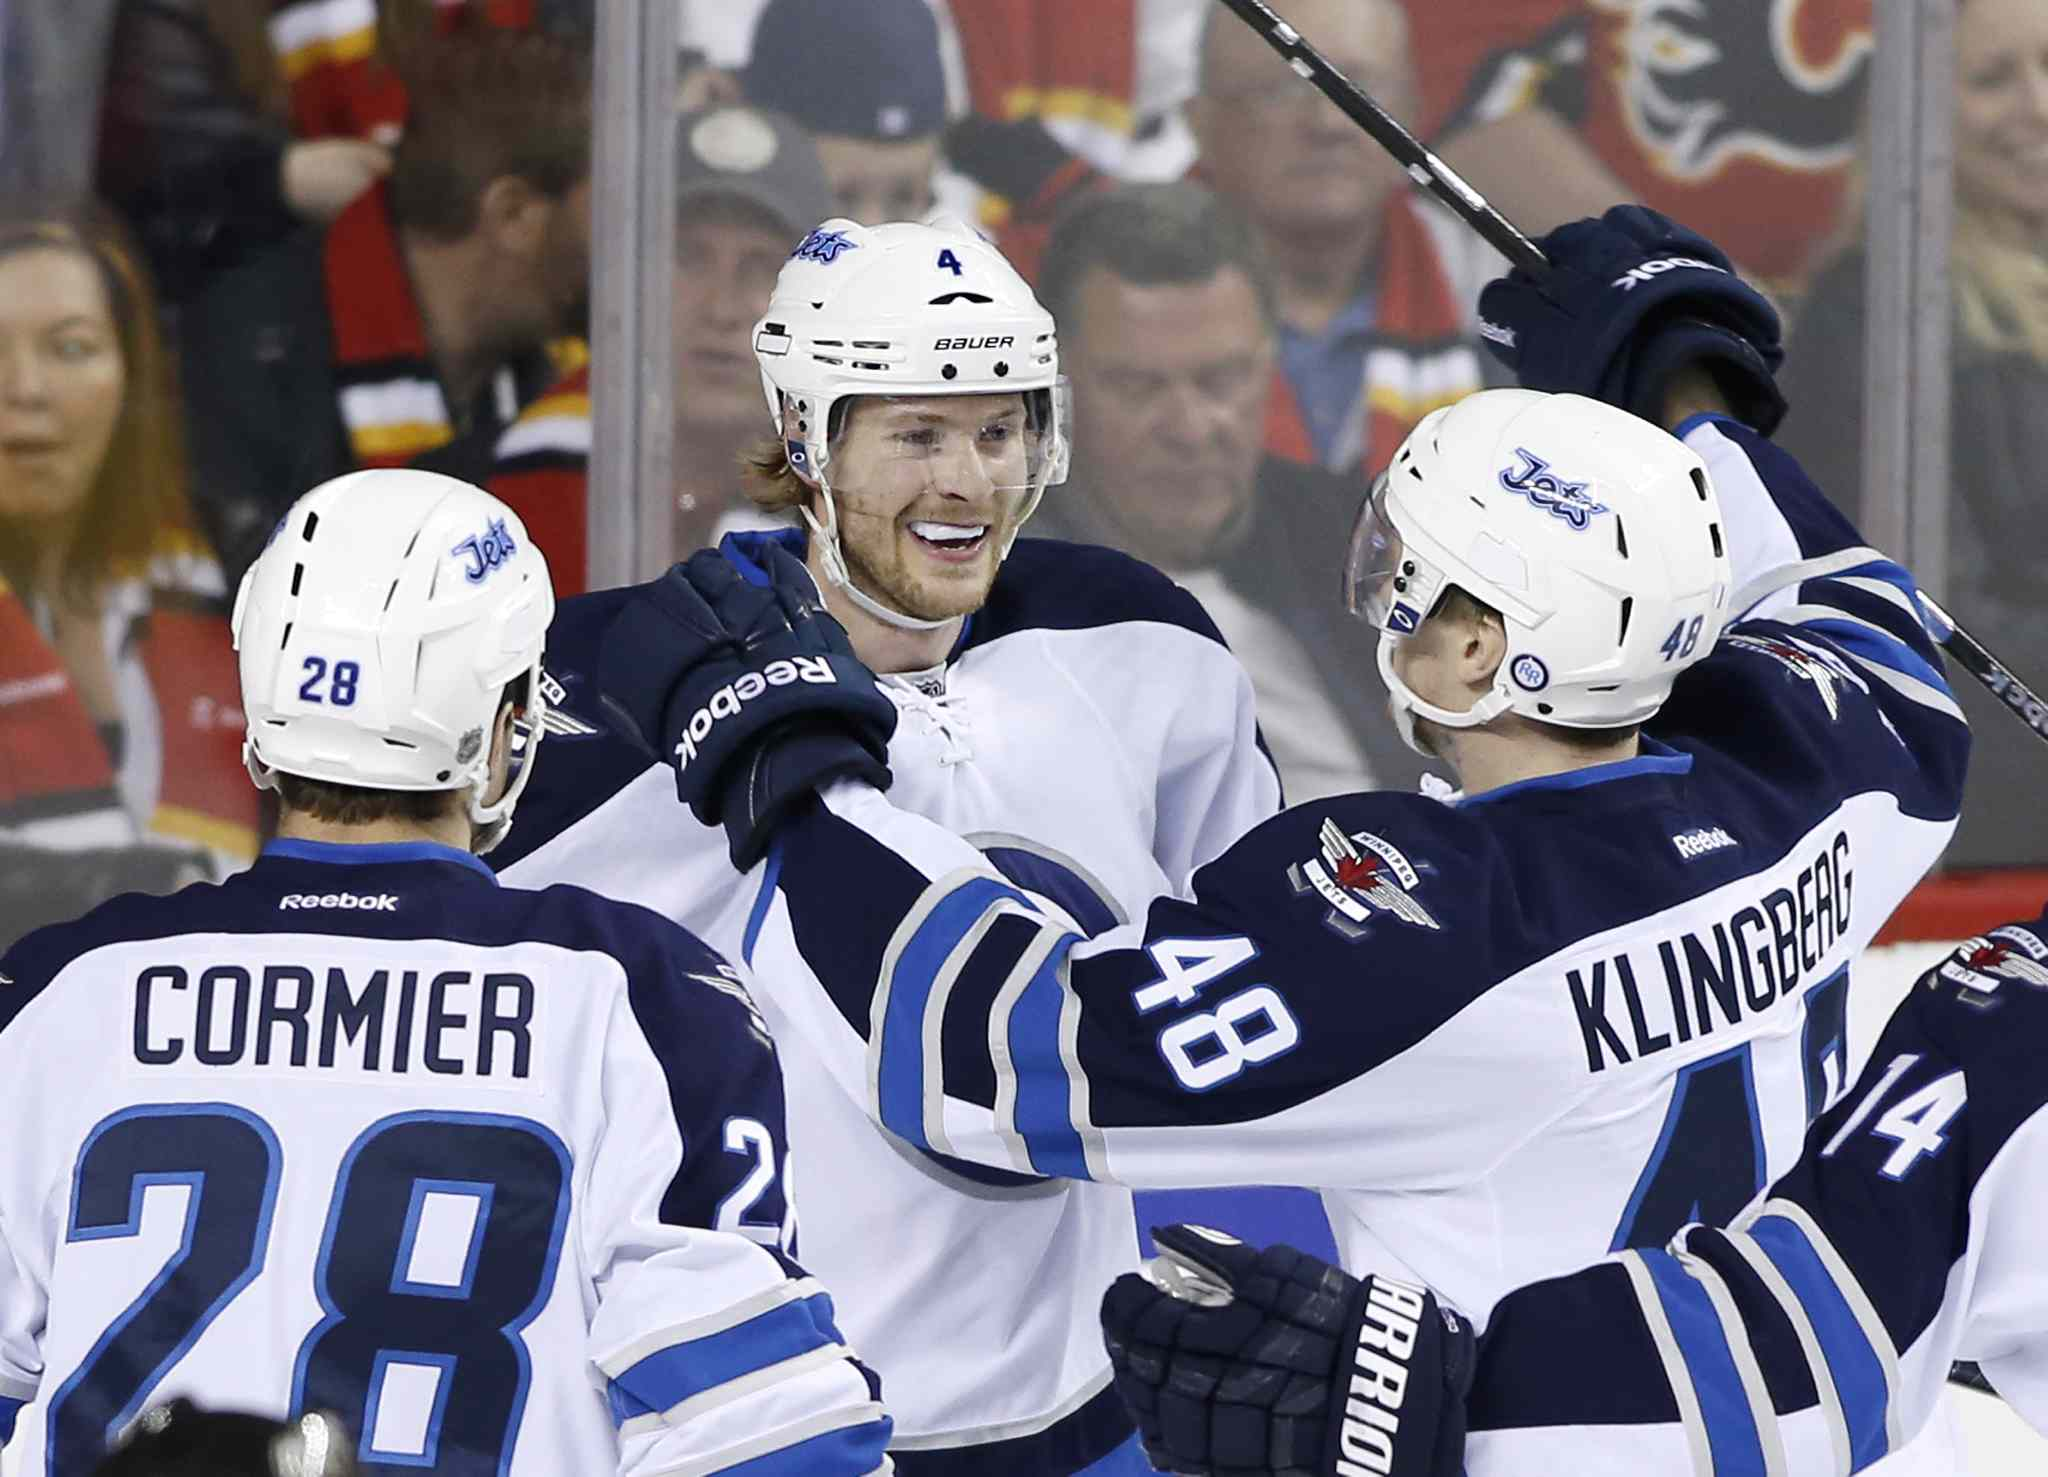 Winnipeg Jets' Paul Postma, centre, celebrates his game winning goal against the Calgary Flames' with Patrice Cormier, left, and Carl Klingberg, from Sweden, during third period NHL action in Calgary, Alta., April 11, 2014.